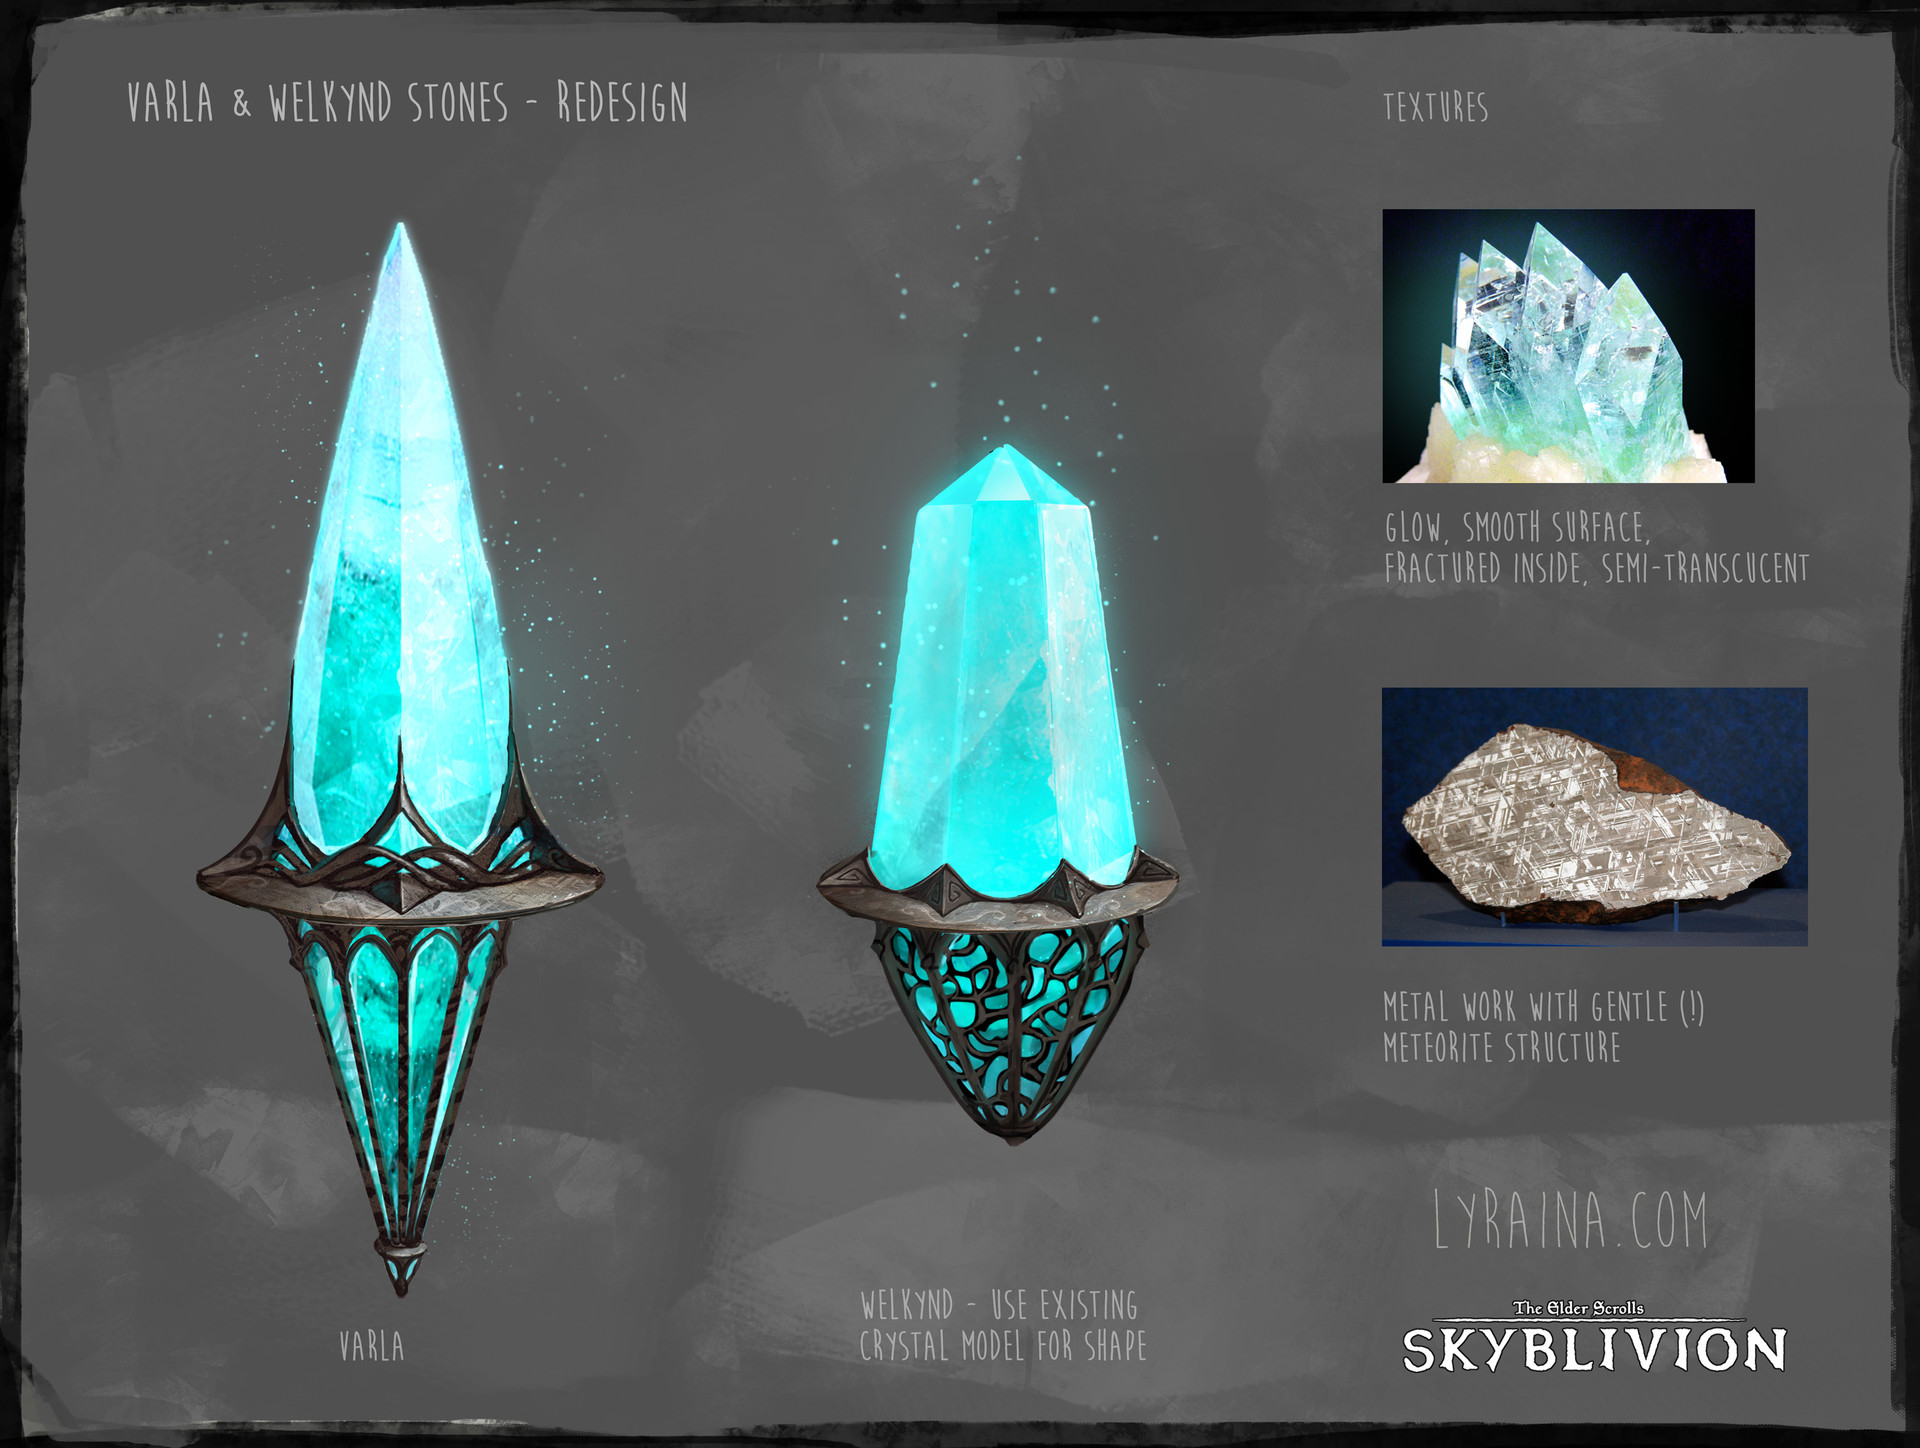 Varla & Welkynd Stone redesign - final approved designs.